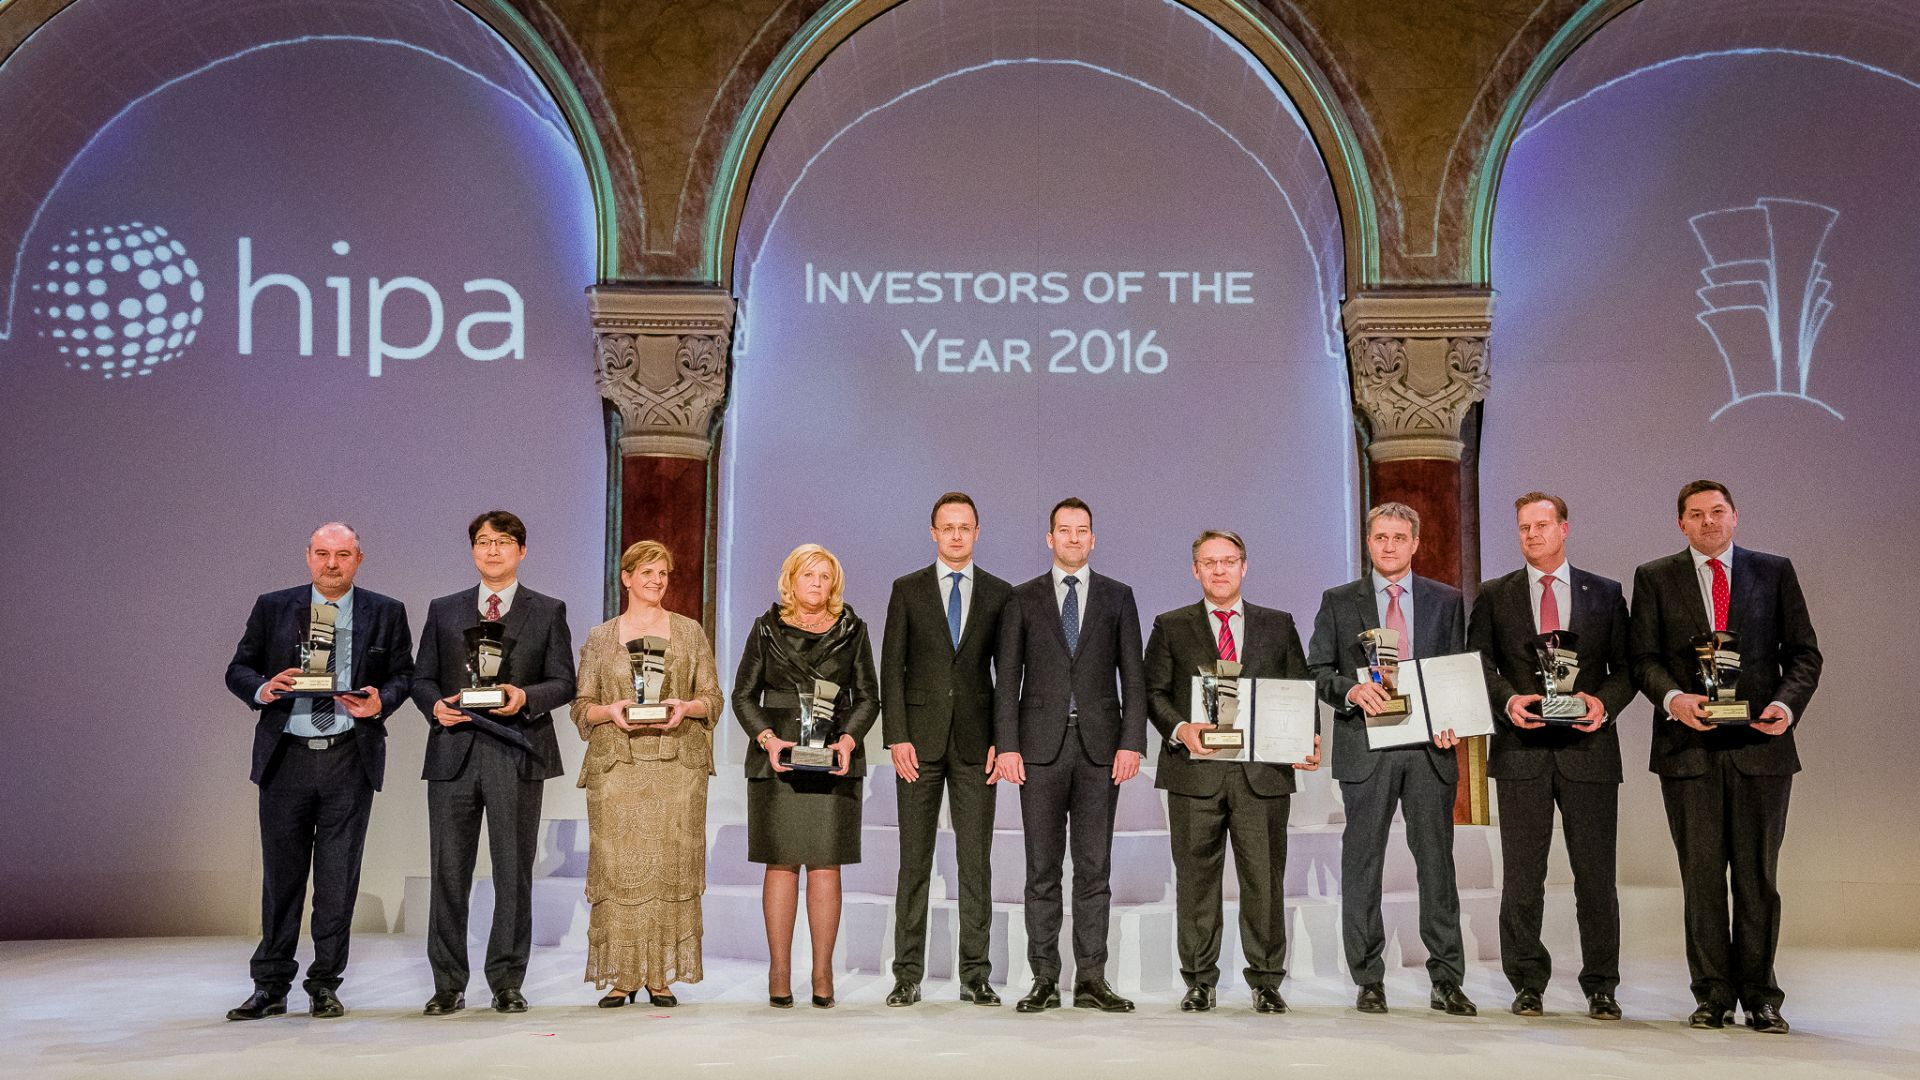 Investors of the Year in 2016